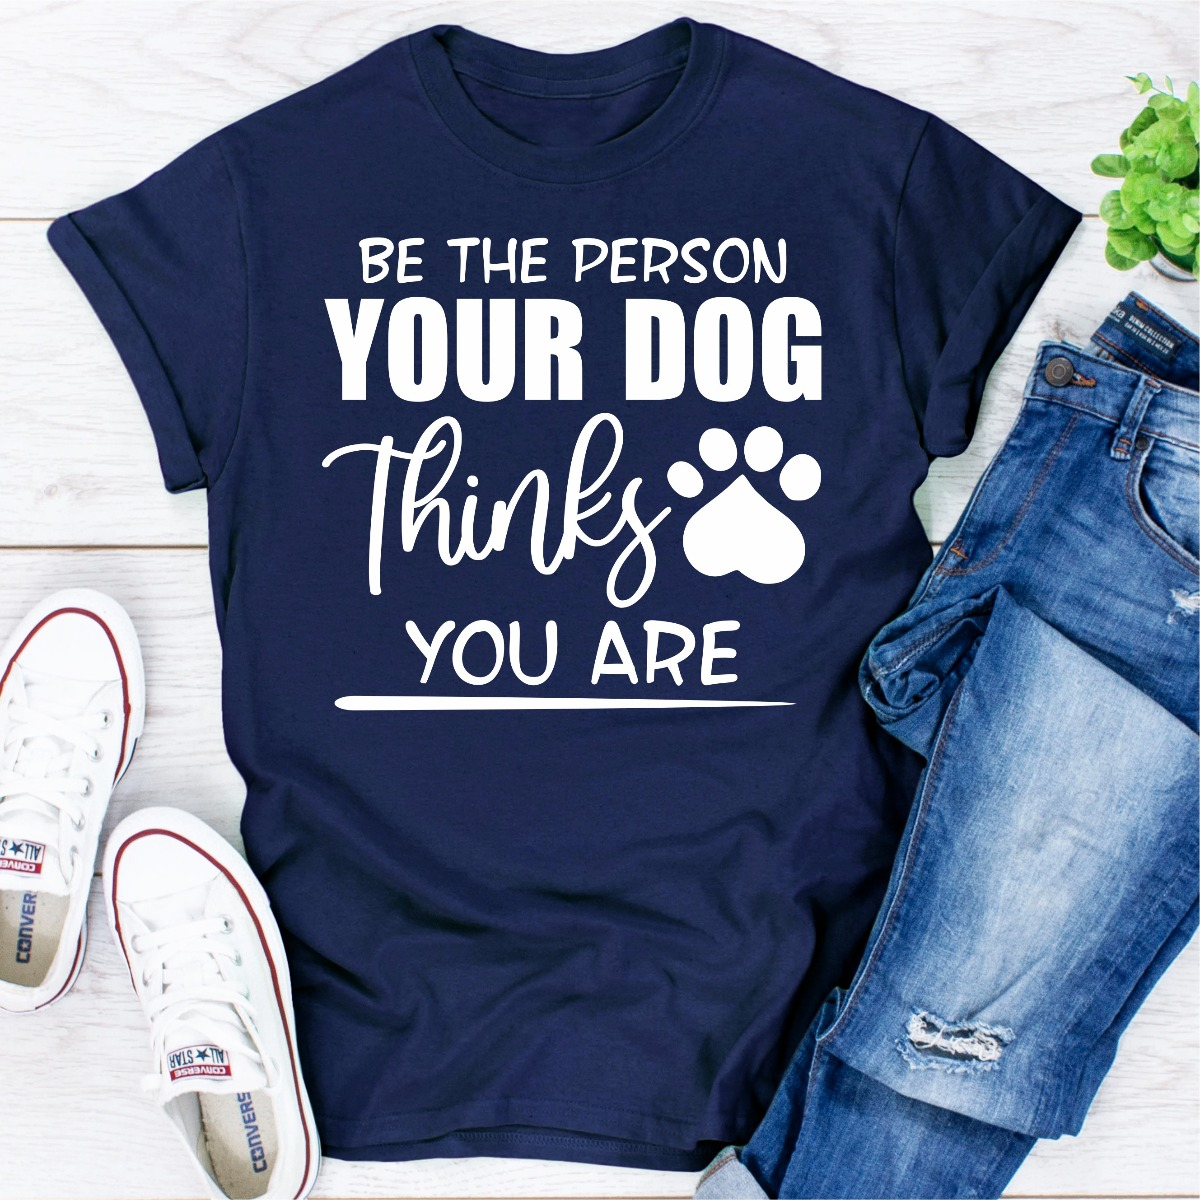 Be The Person Your Dog Thinks You Are (Navy / Xl)